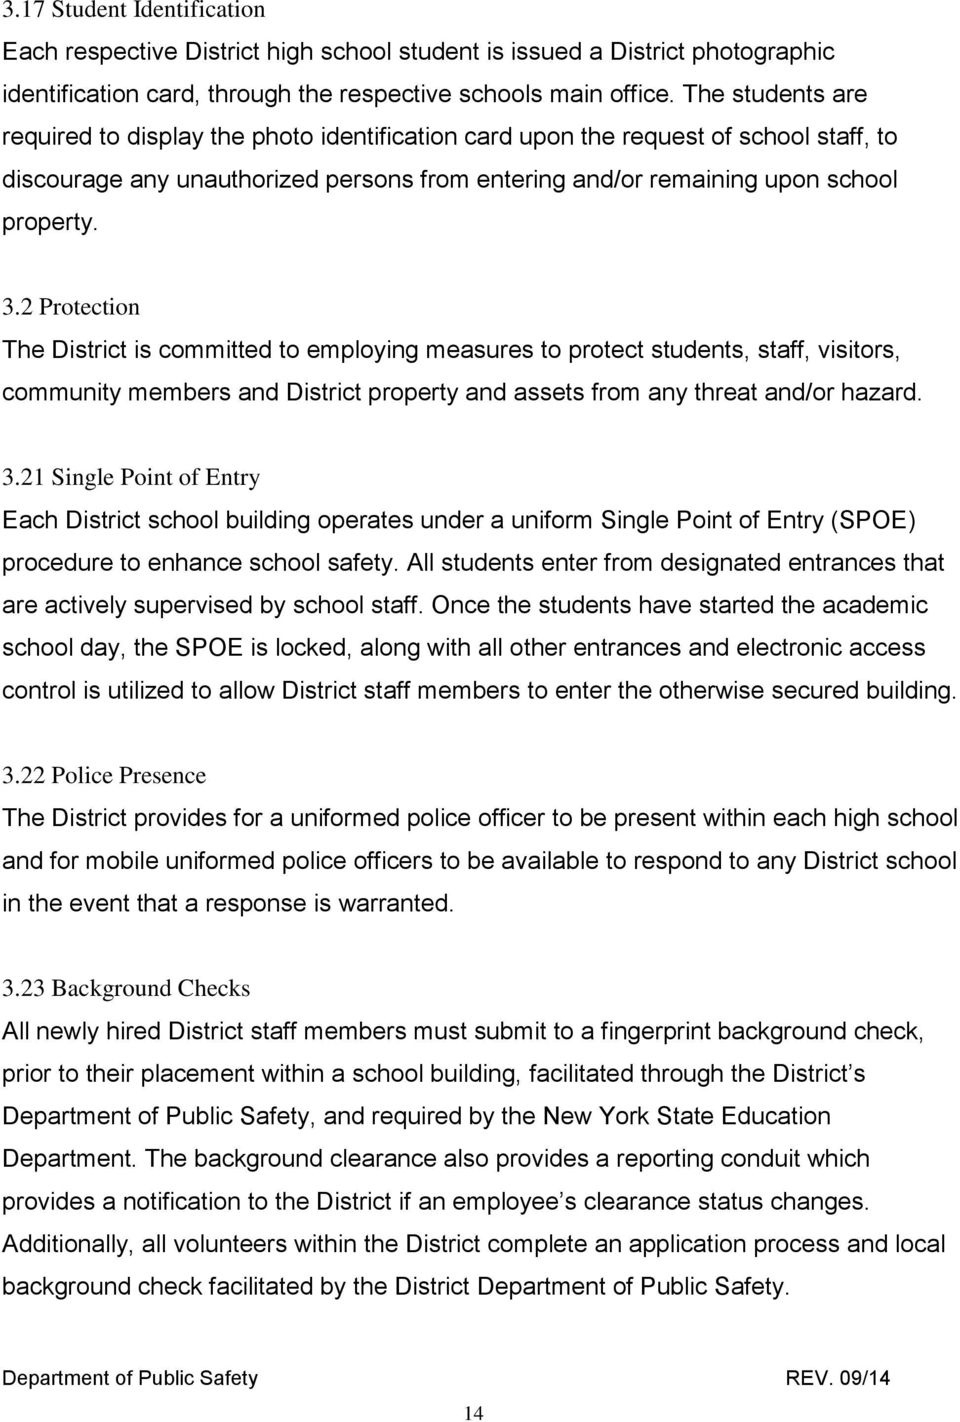 2 Protection The District is committed to employing measures to protect students, staff, visitors, community members and District property and assets from any threat and/or hazard. 3.